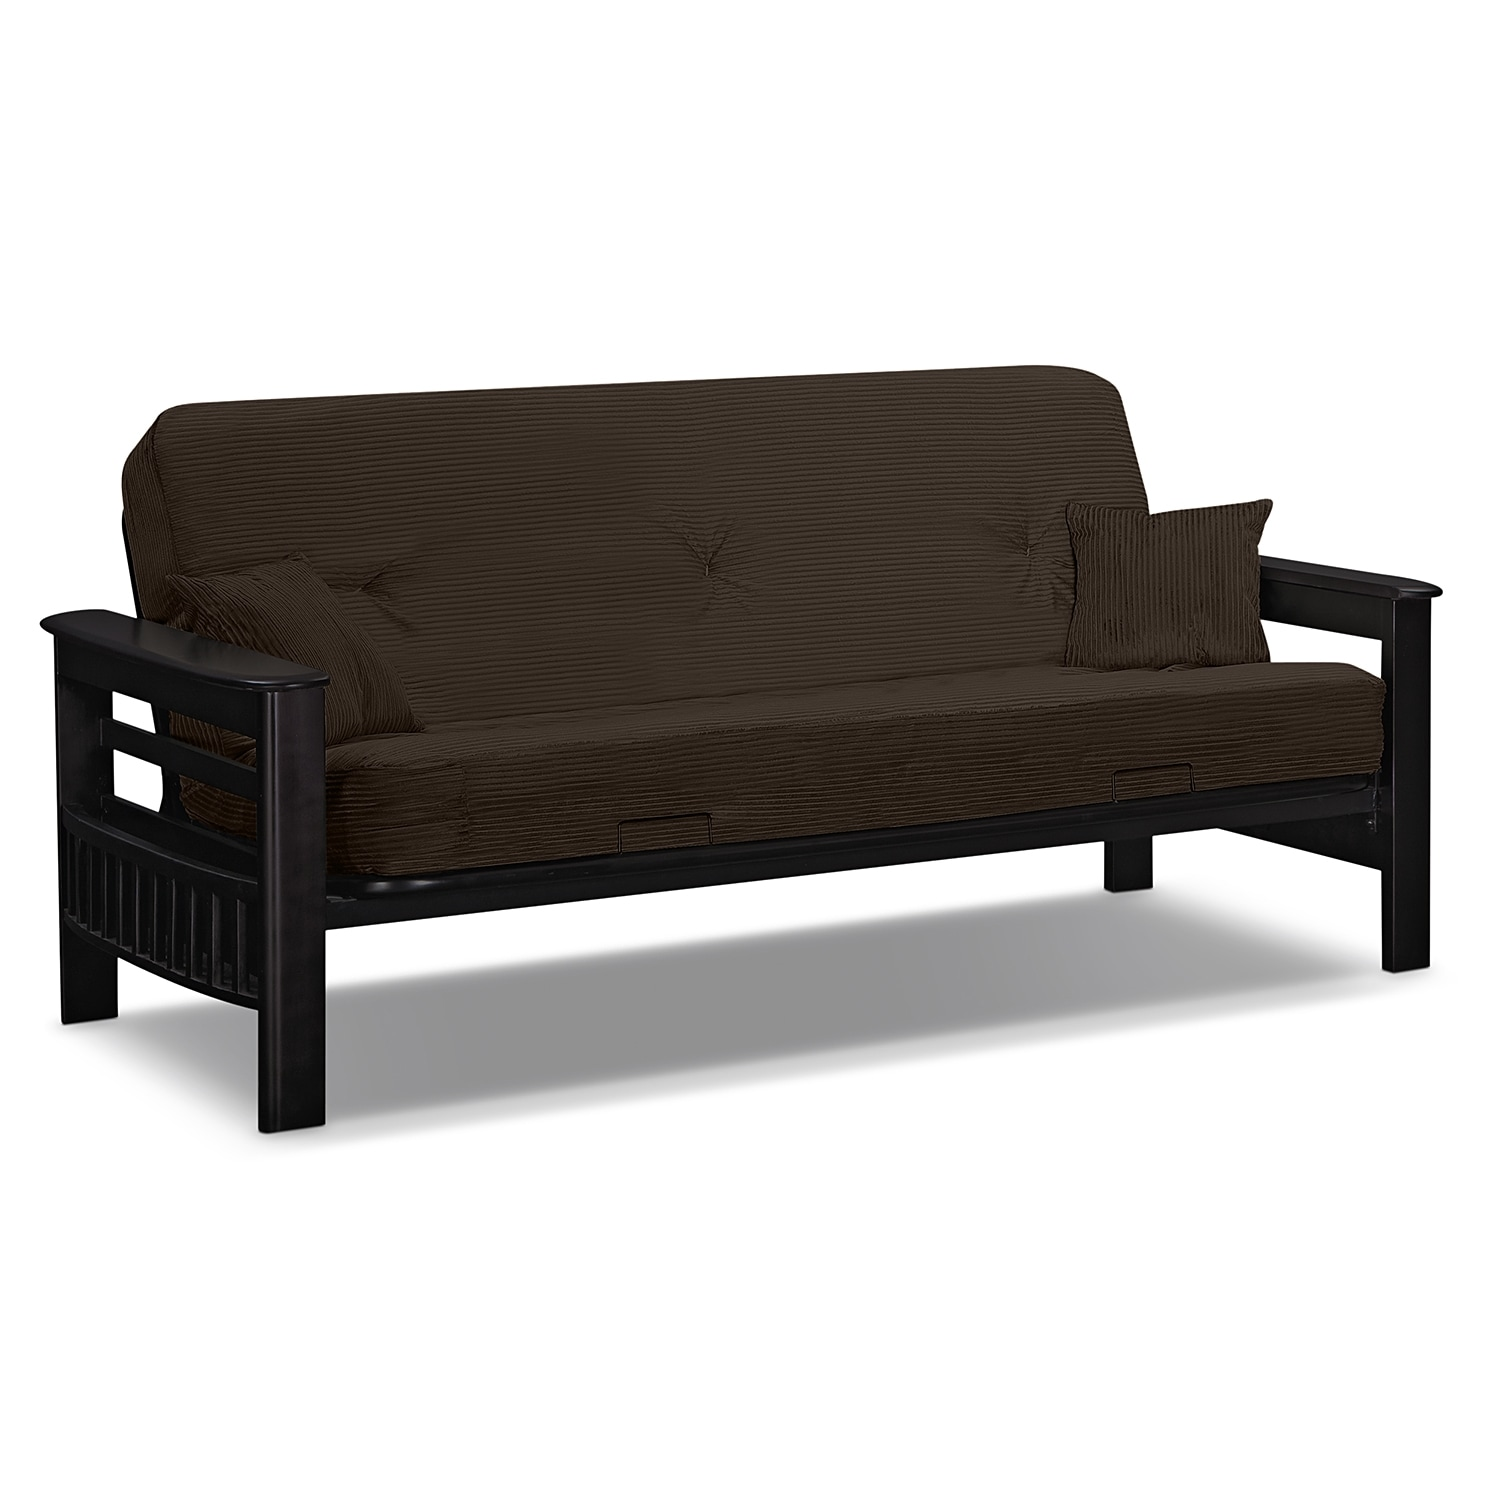 Tampa Futon Sofa Bed Brown Value City Furniture